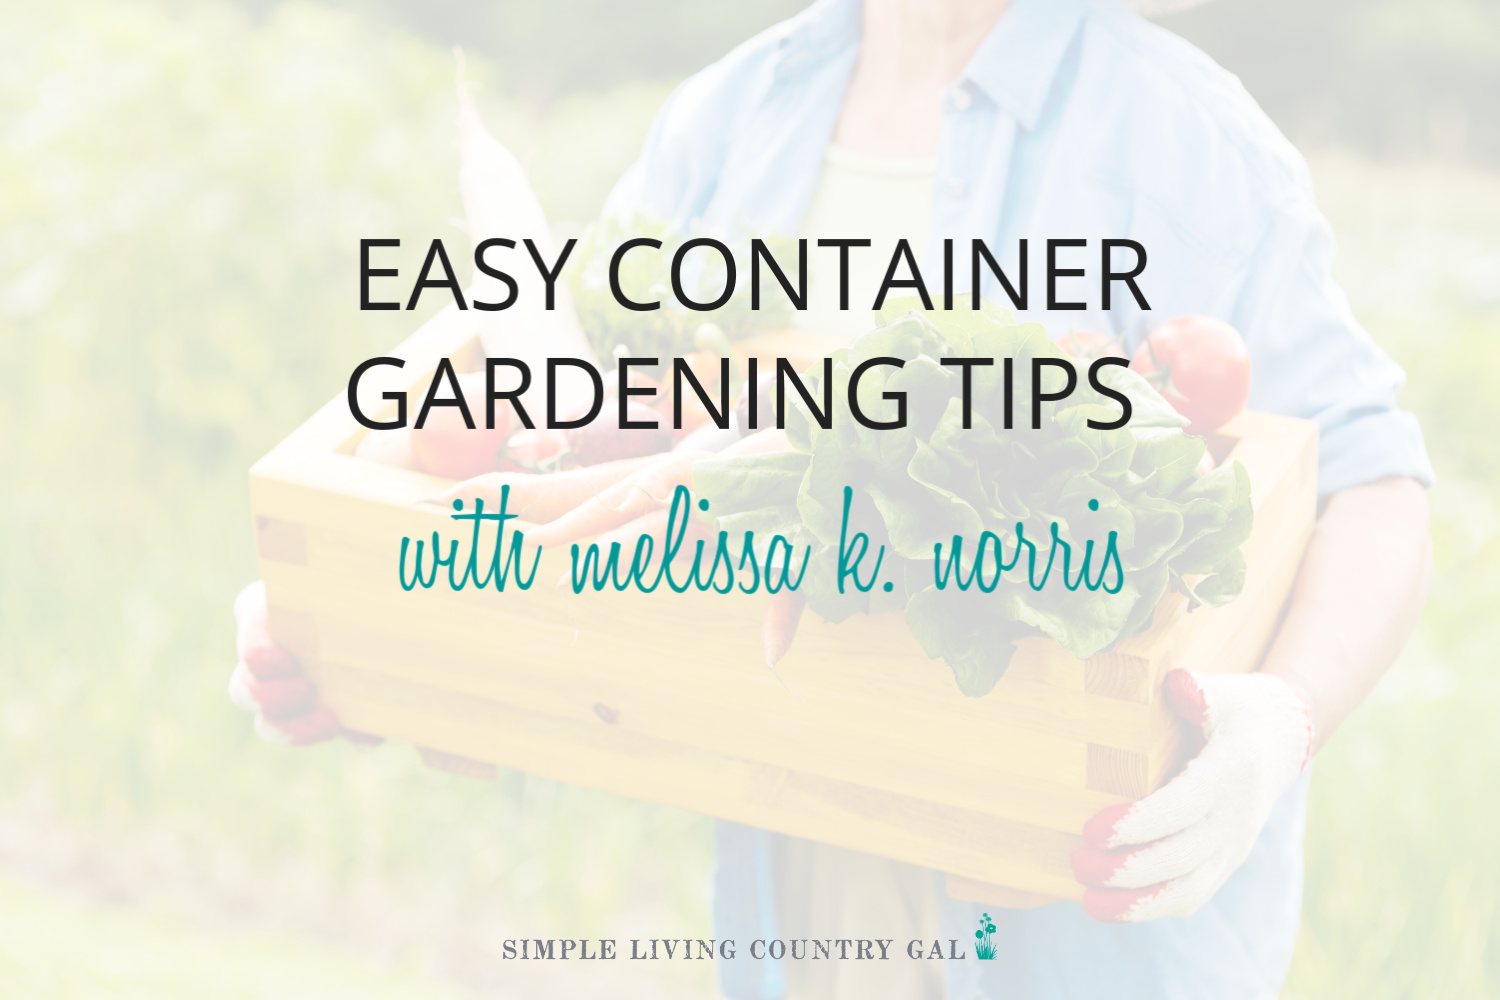 Easy Container Gardening Tips for Beginners – an Interview with Melissa K. Norris